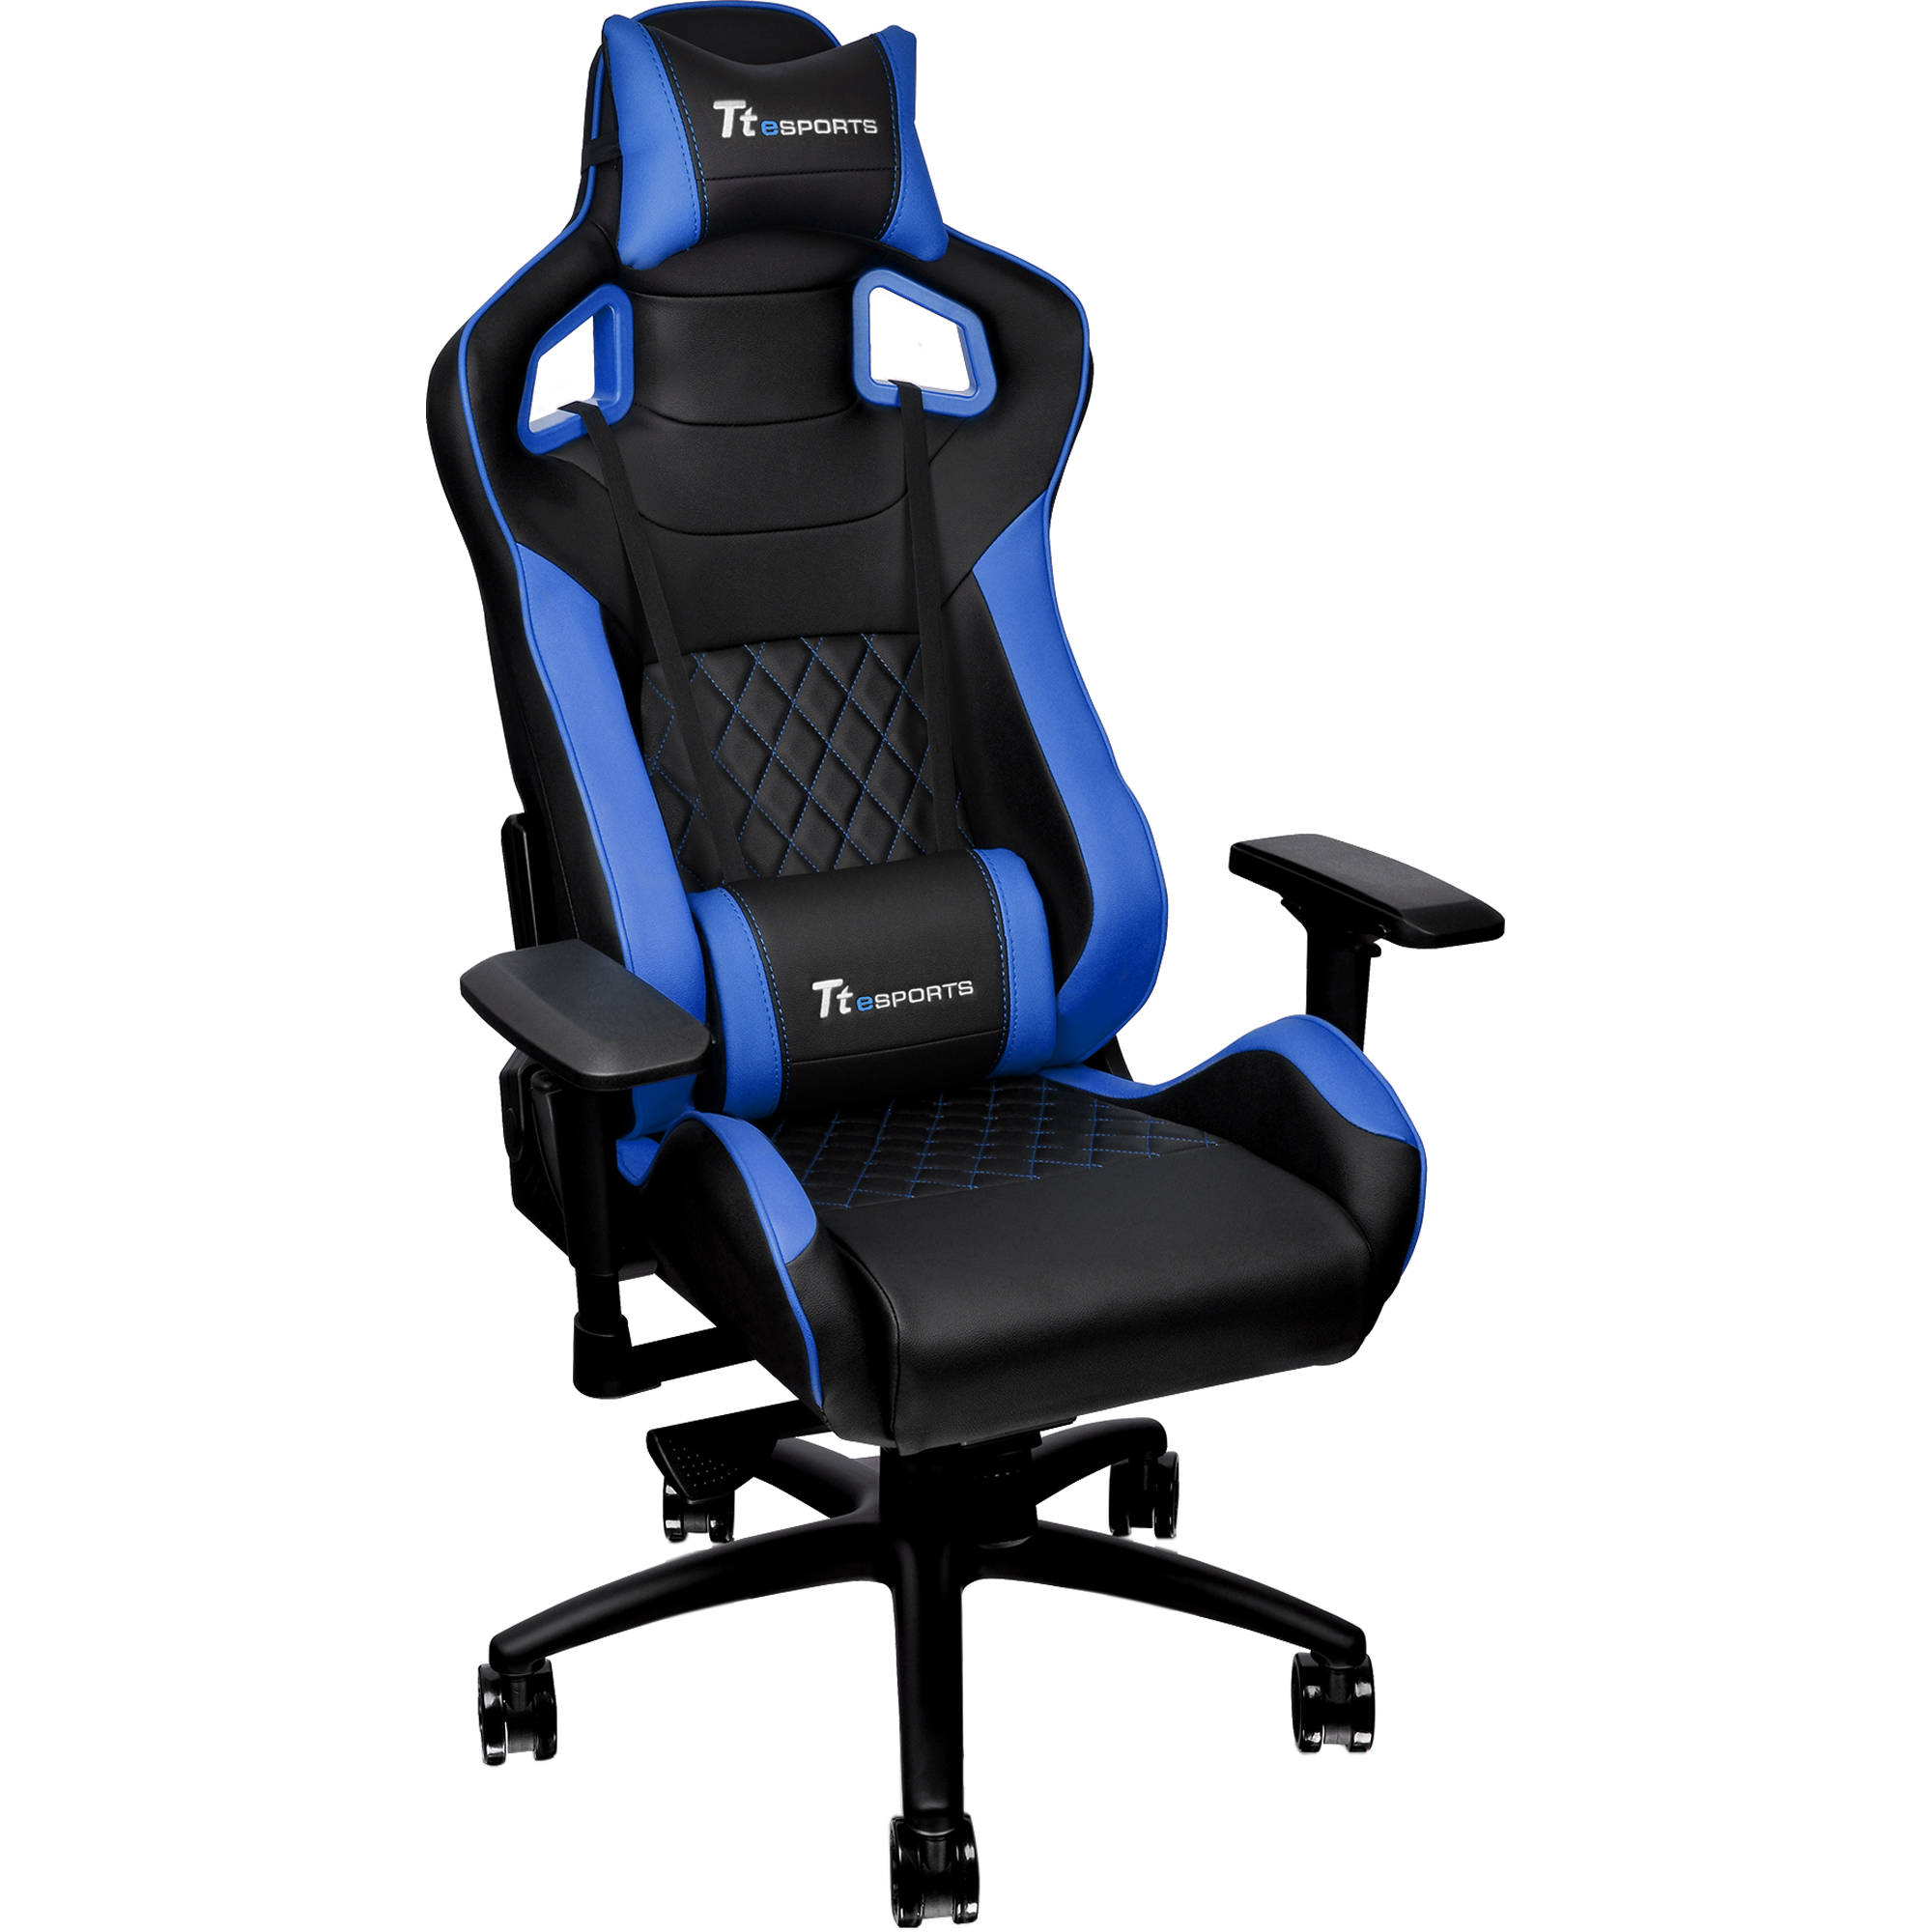 Thermaltake Tt eSports GT Fit F100 Gaming Chair (Blue u0026 Black)  sc 1 st  Bu0026H & Thermaltake Tt eSports GT Fit F100 Gaming Chair GCGTFBLMFDL01